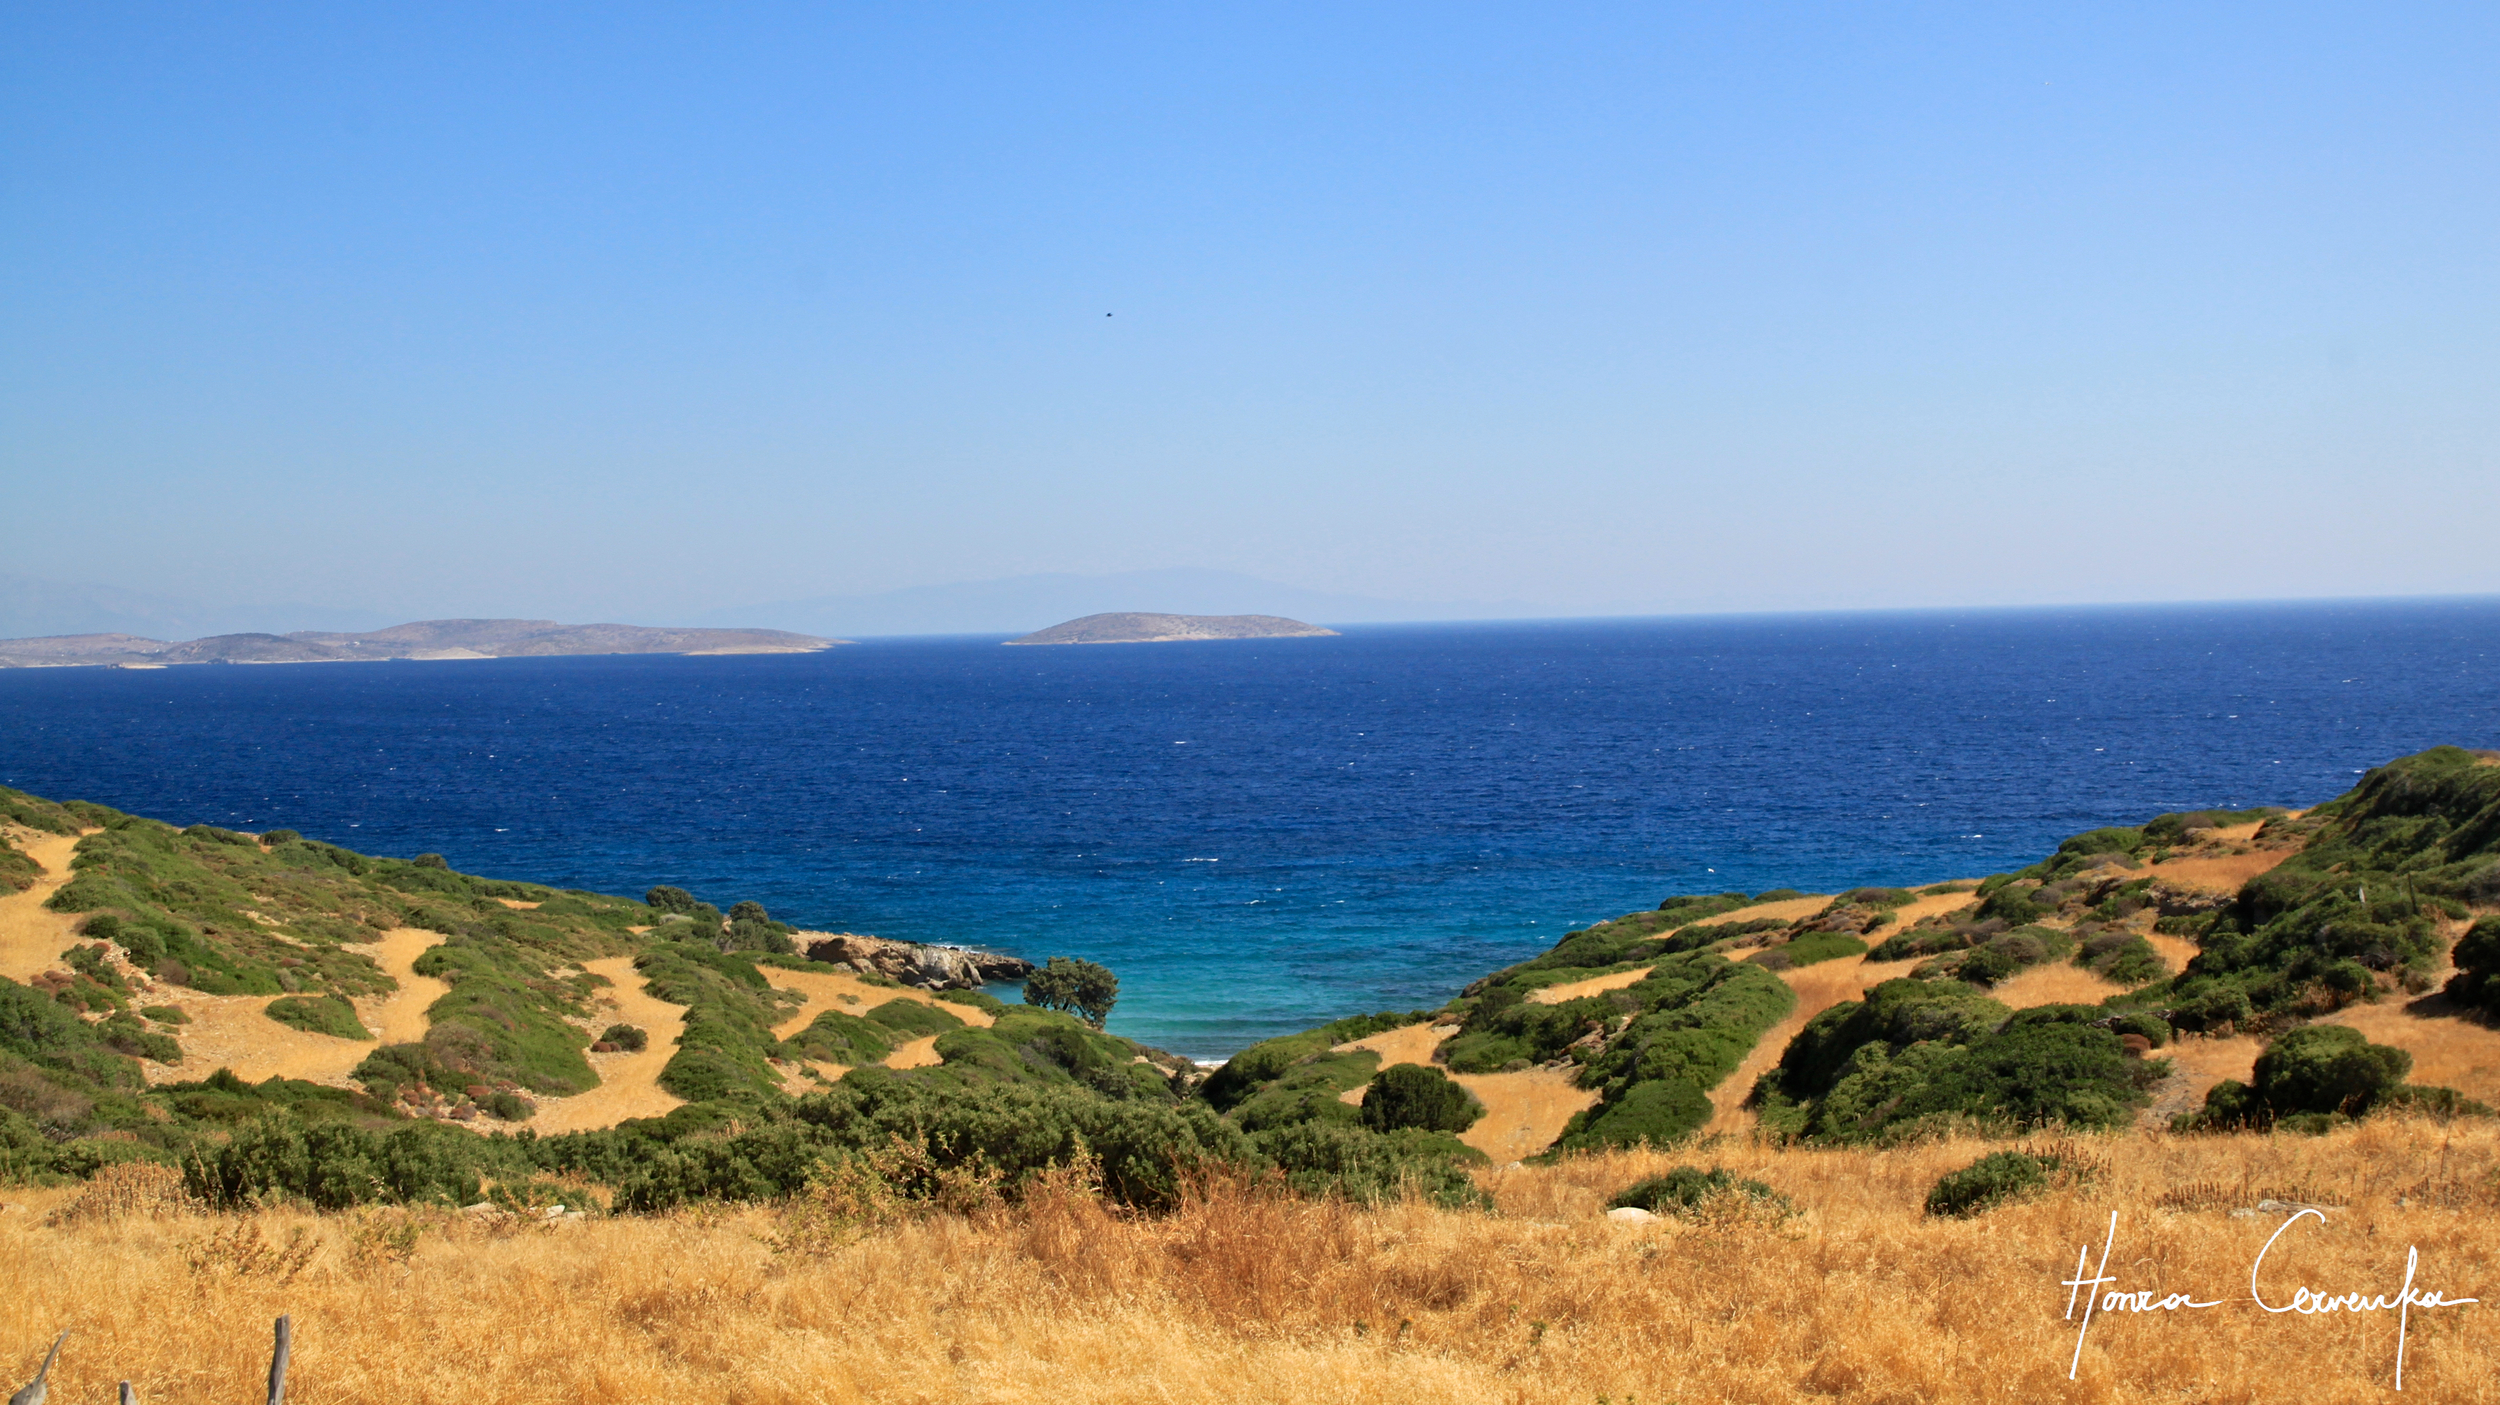 What a vista: Can you see Turkey at the horizon?